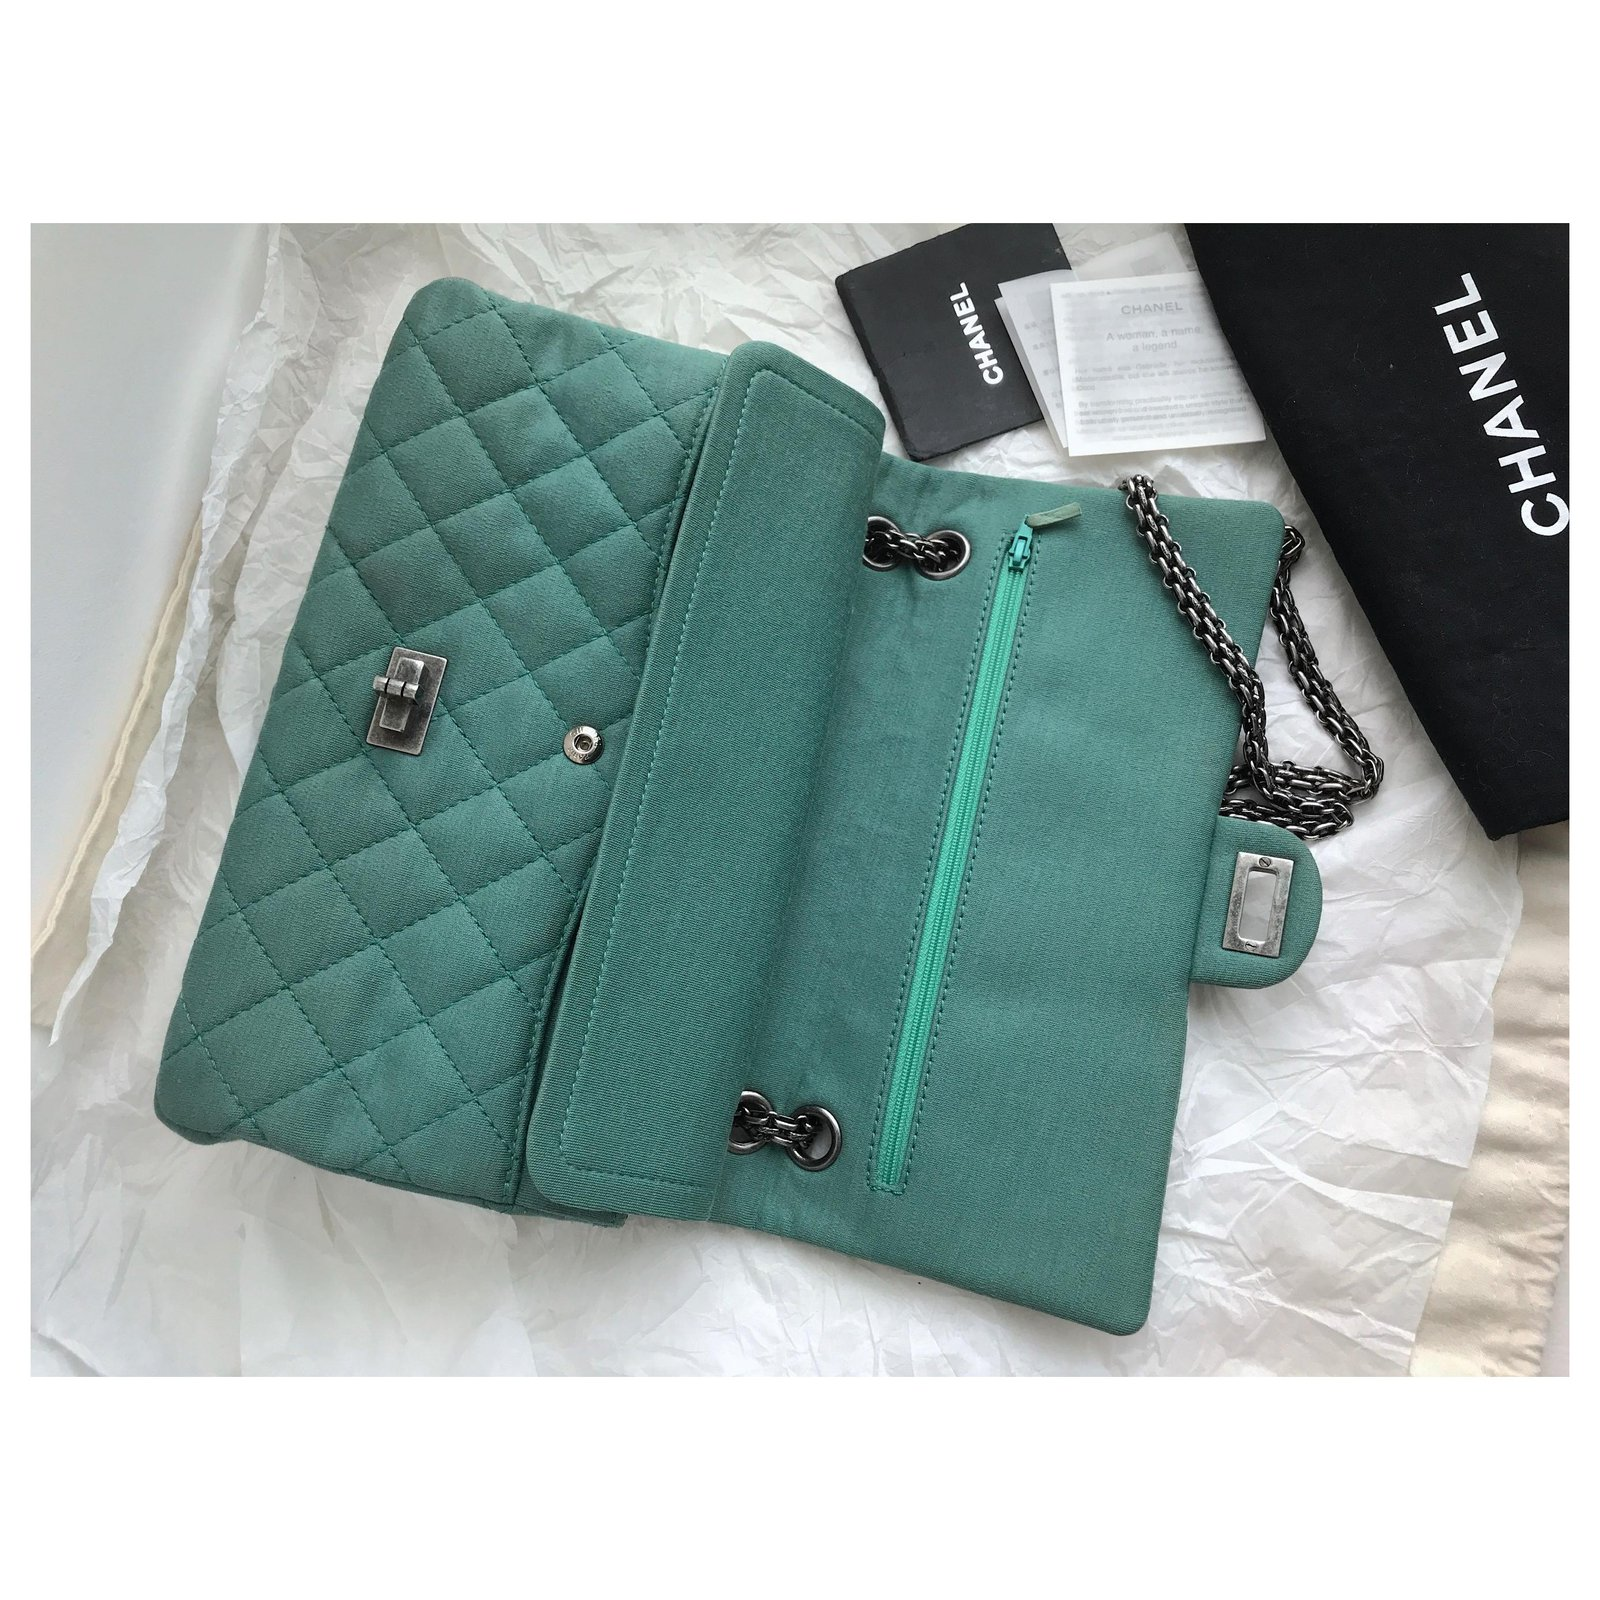 8101ef6dac3dfc Facebook · Pin This. Chanel 2.55 Reissue 28 cm Large Flap Bag 226 Handbags  Leather ...